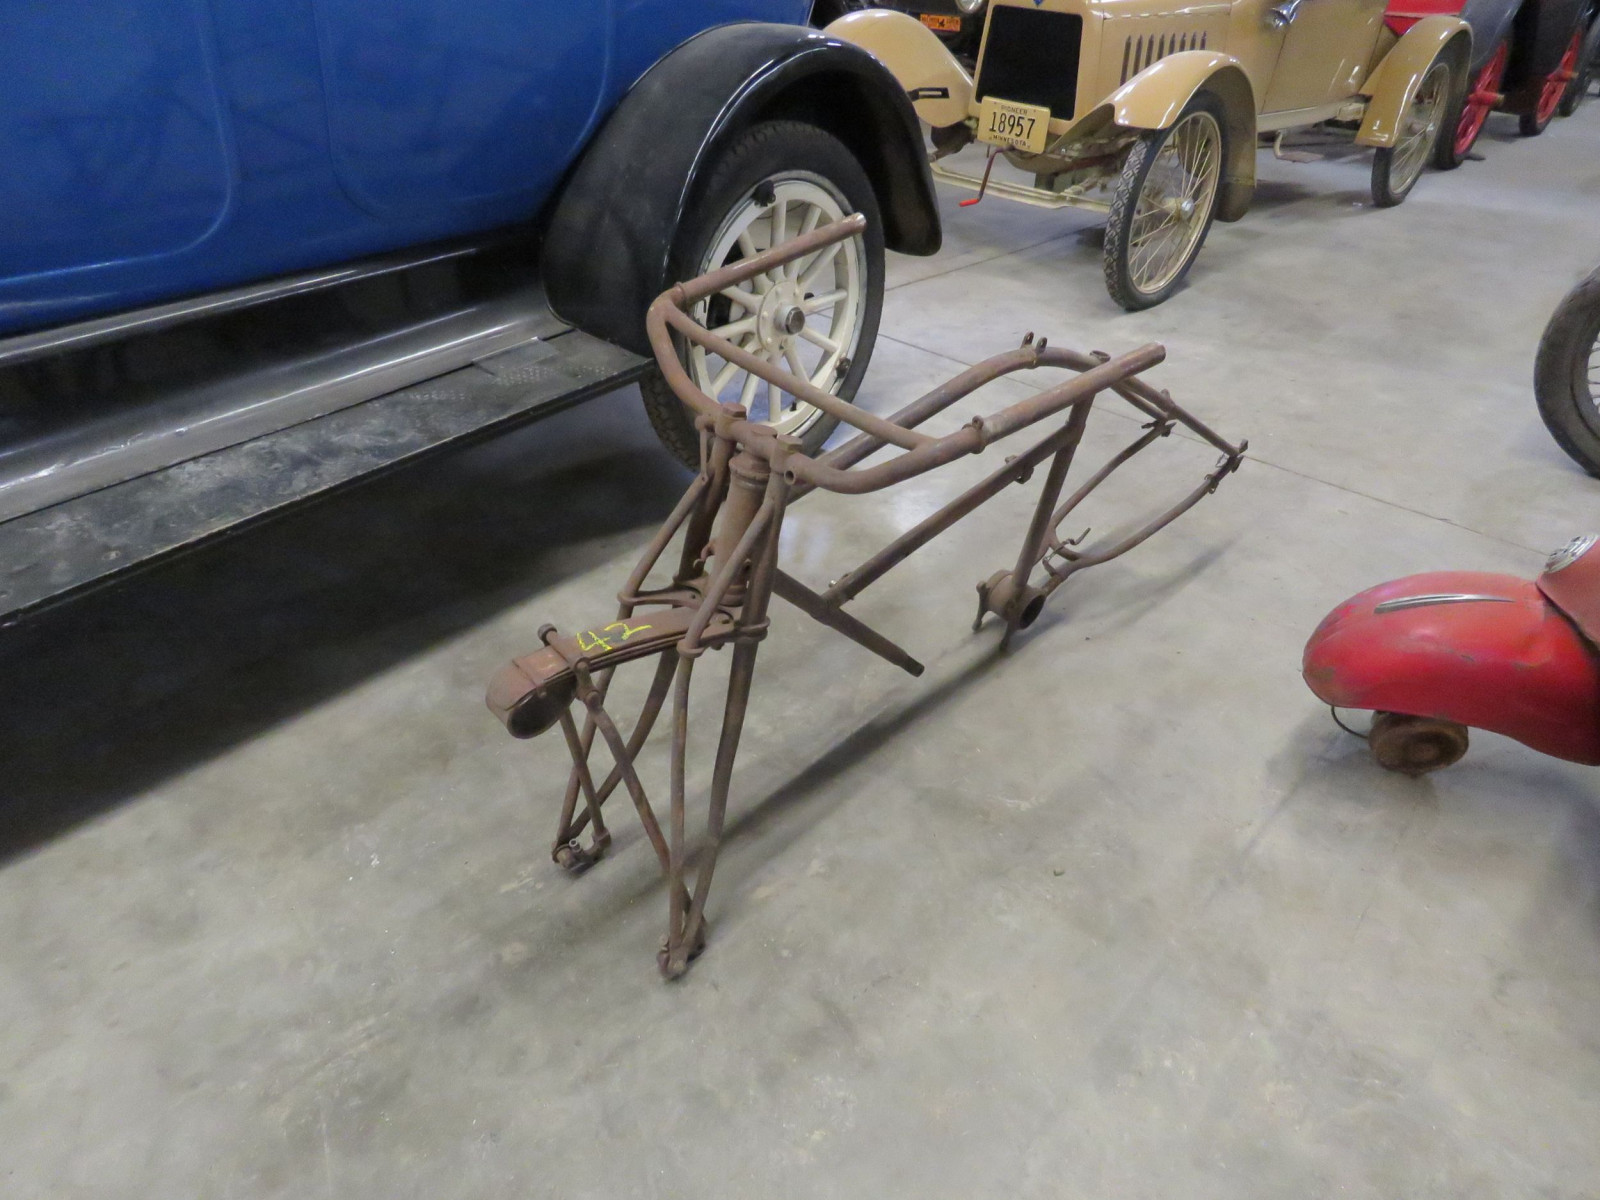 RARE Early Excelsior Motorcycle Frame - Image 1